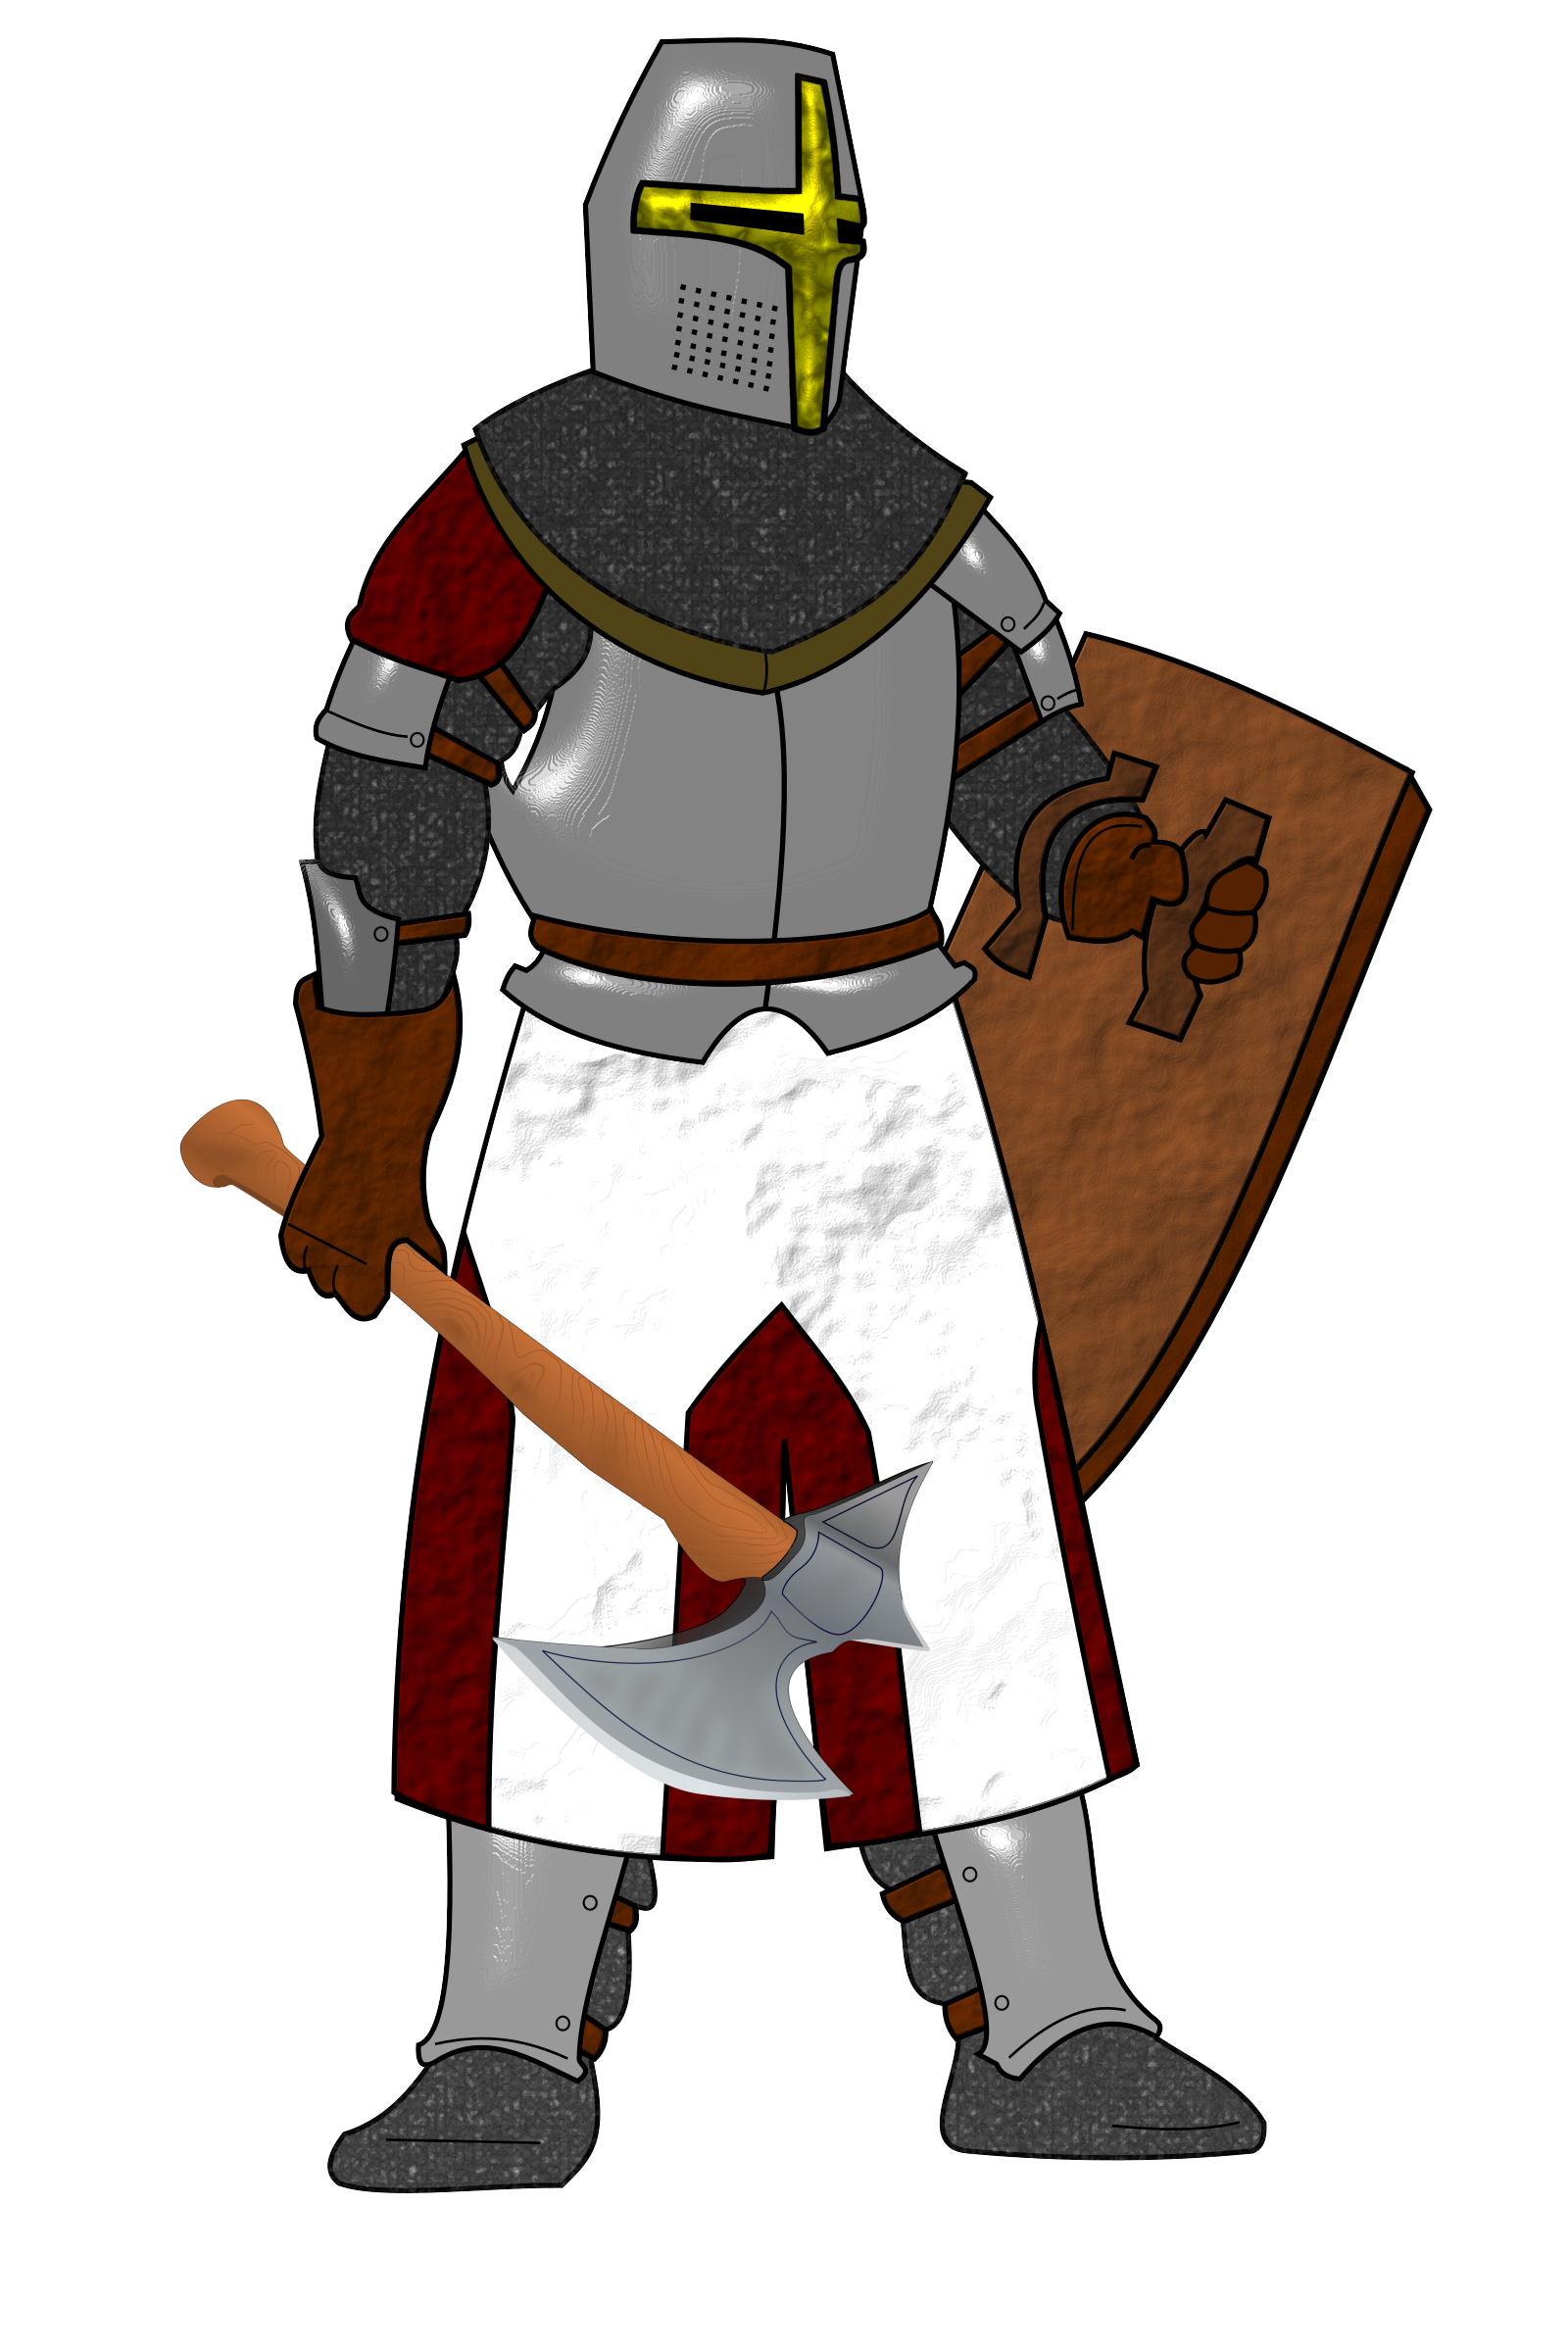 Knight clipart body armor. Plate icons png free